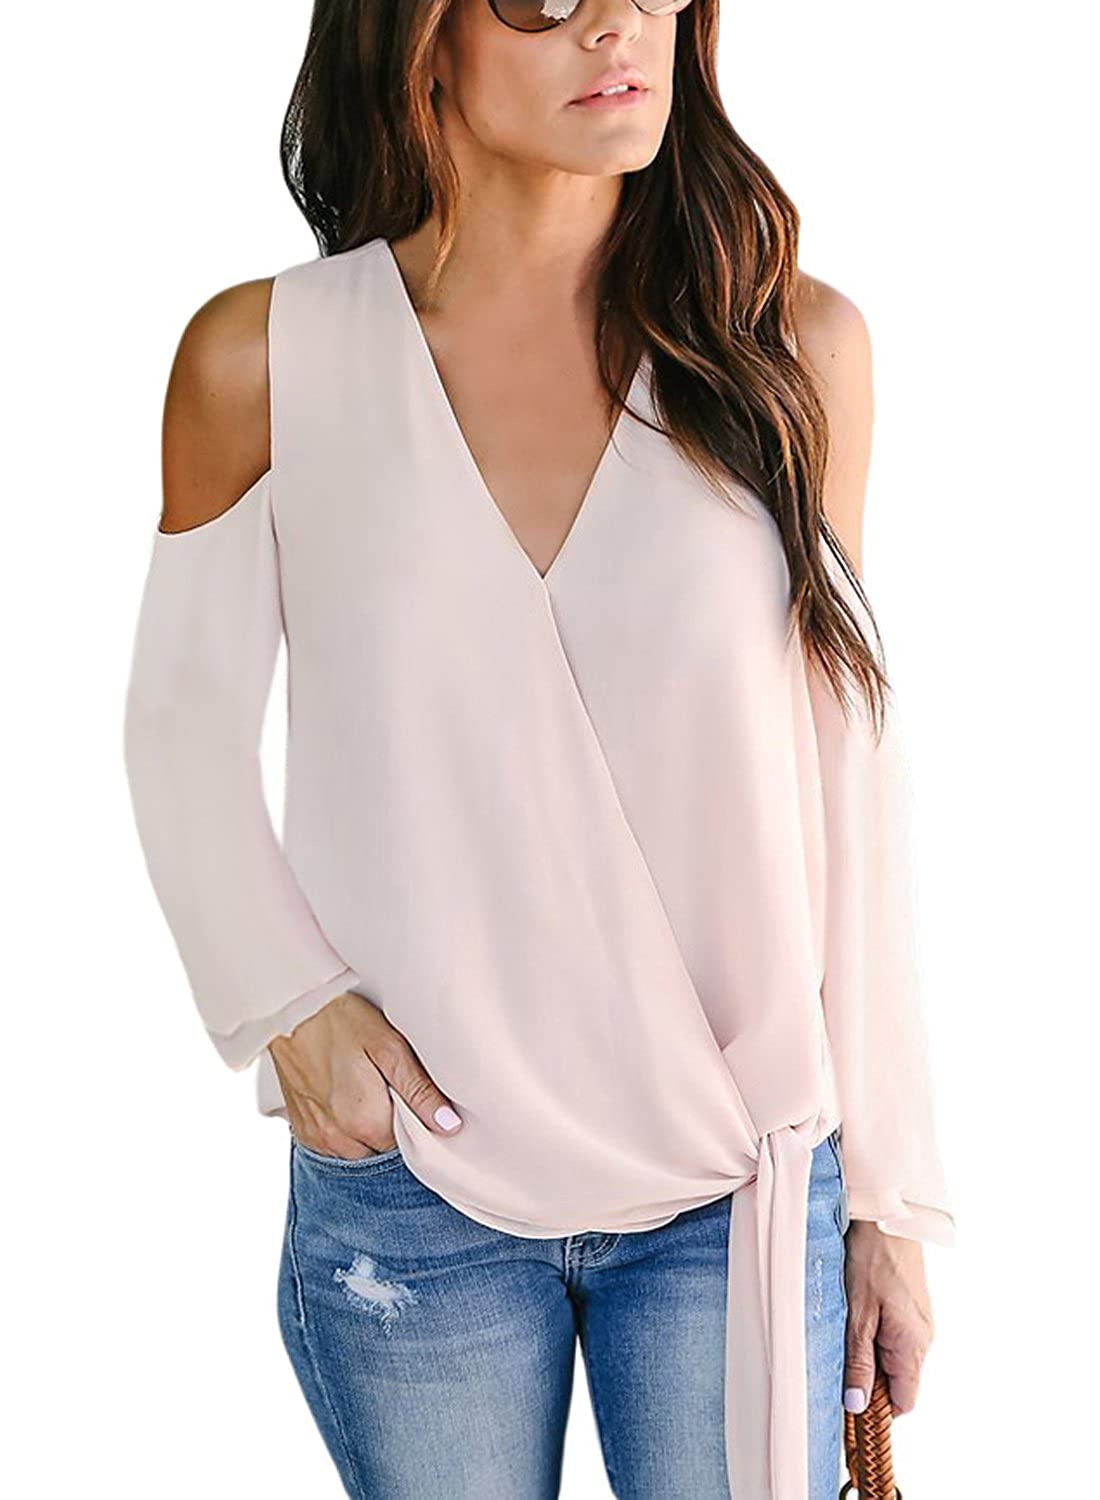 67d02ac9710 Wholesale Price  95%polyester+5%spandex. Pair With White Jeans And a Travel  Bag For a Cool Look Stylish Blouses Are Perfect To Elongate a Slim Figure